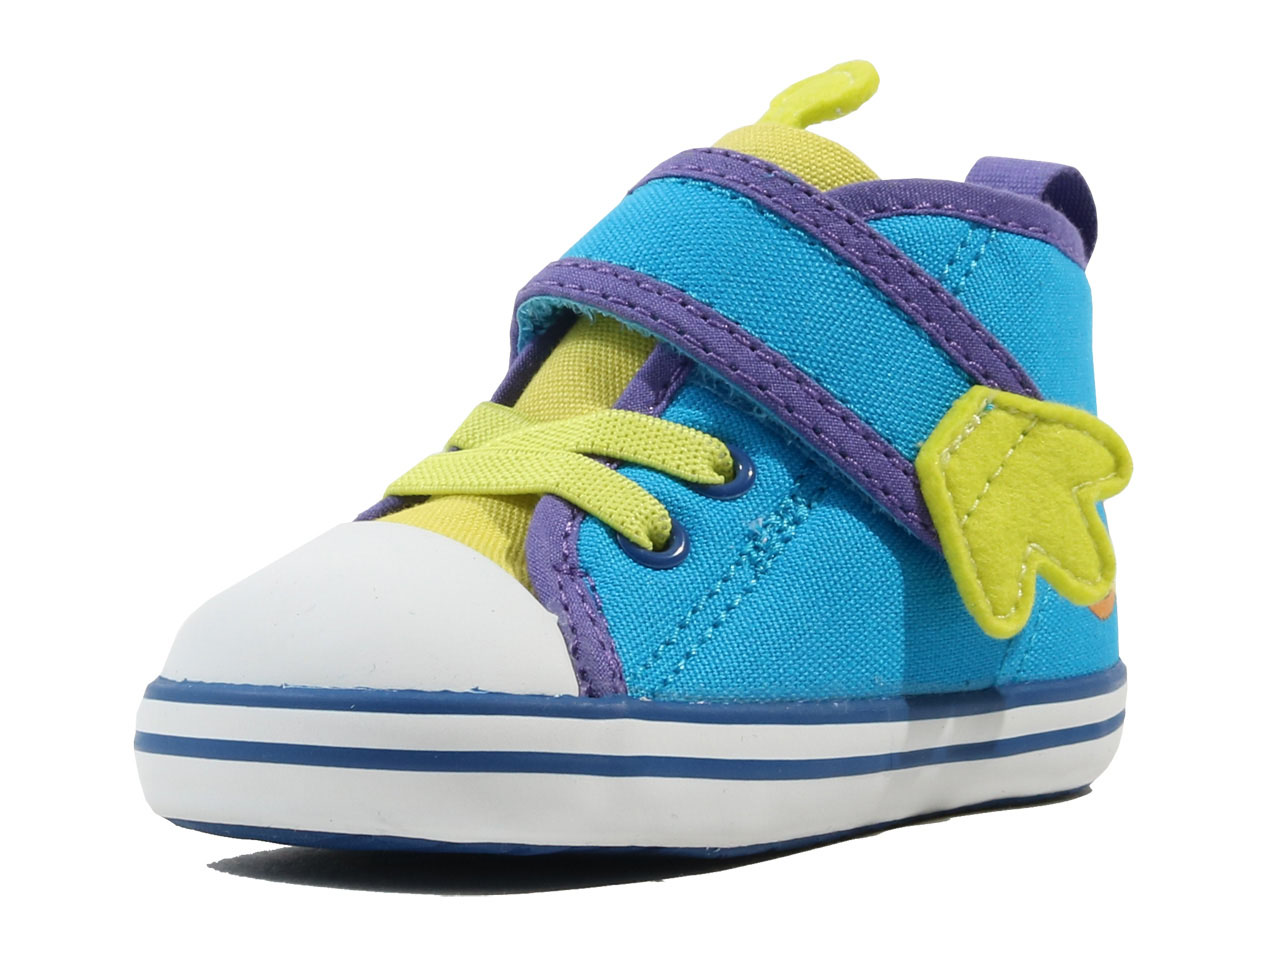 convers_baby_all_star_n_toy_story_ae_v_1_32712796